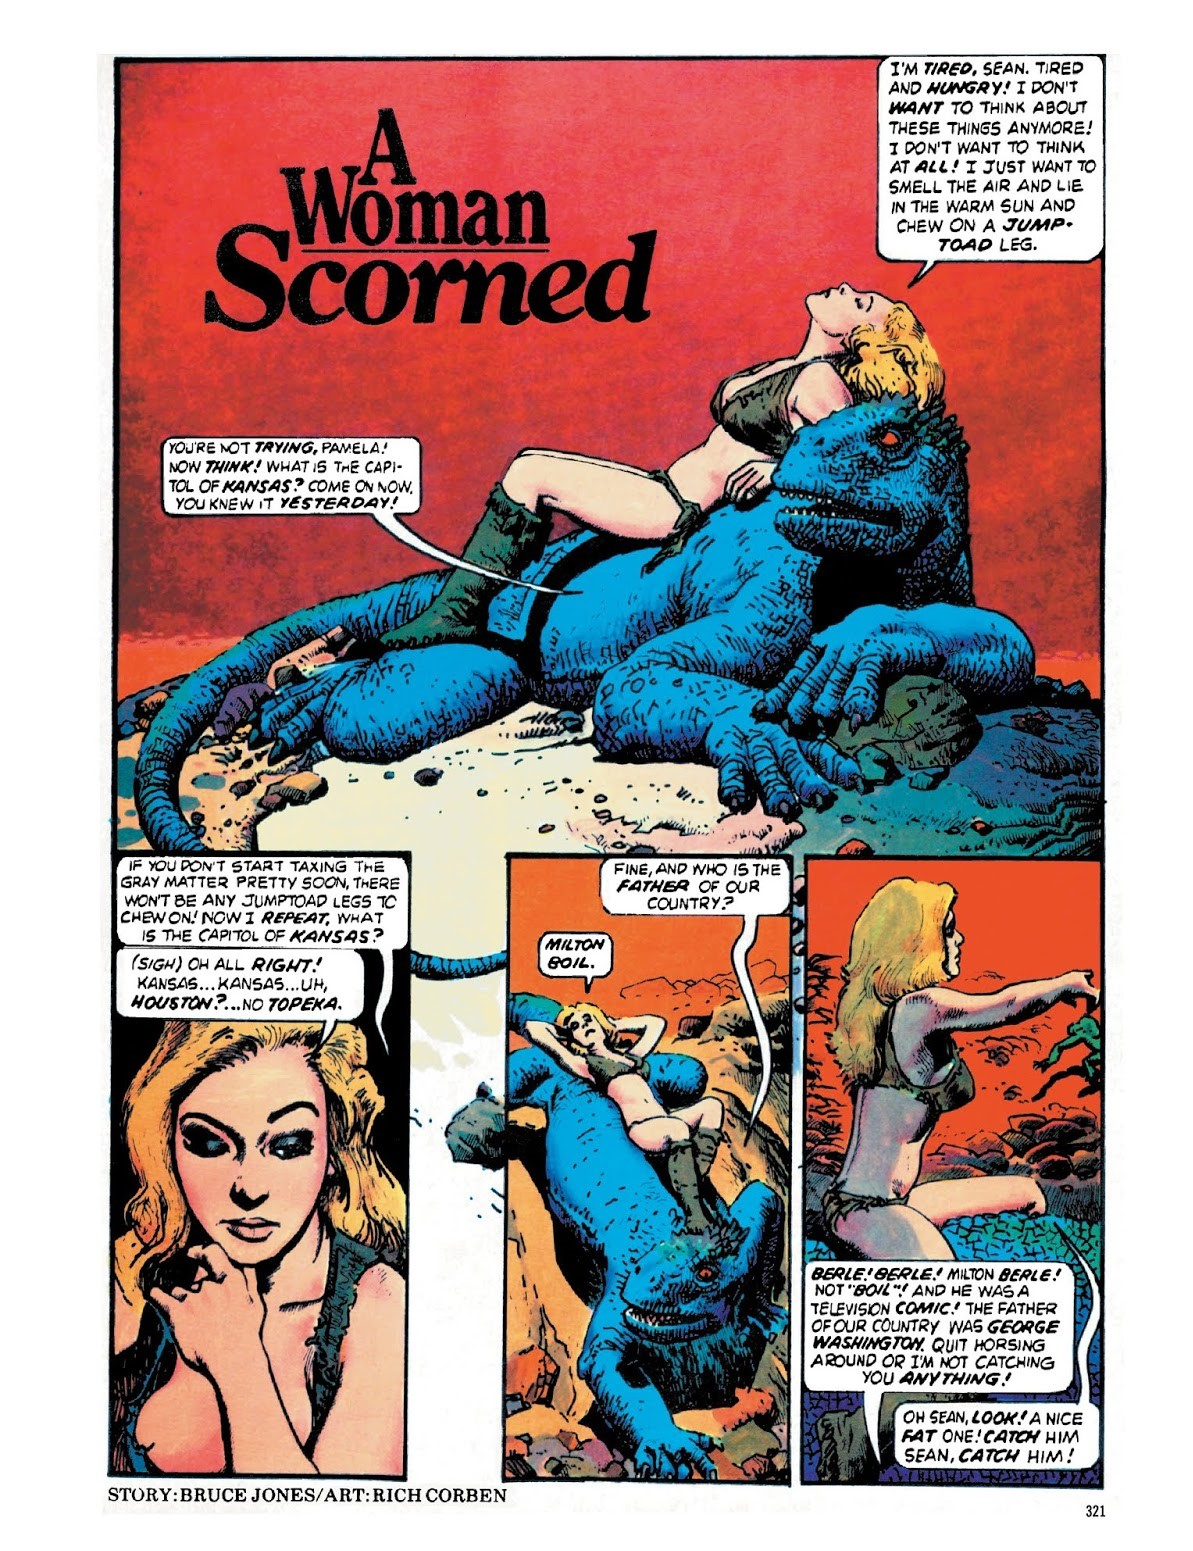 A woman scorned From Eerie #90 (February 1978)